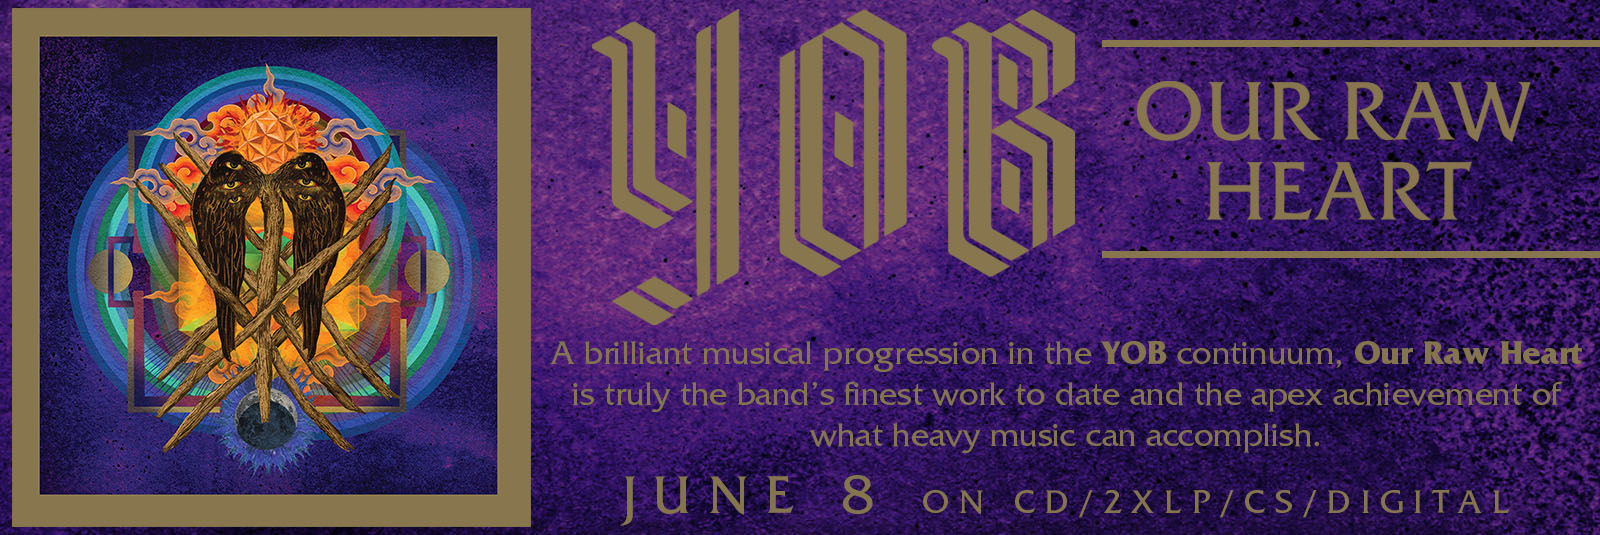 yob-our-raw-heart-relapse-june-8